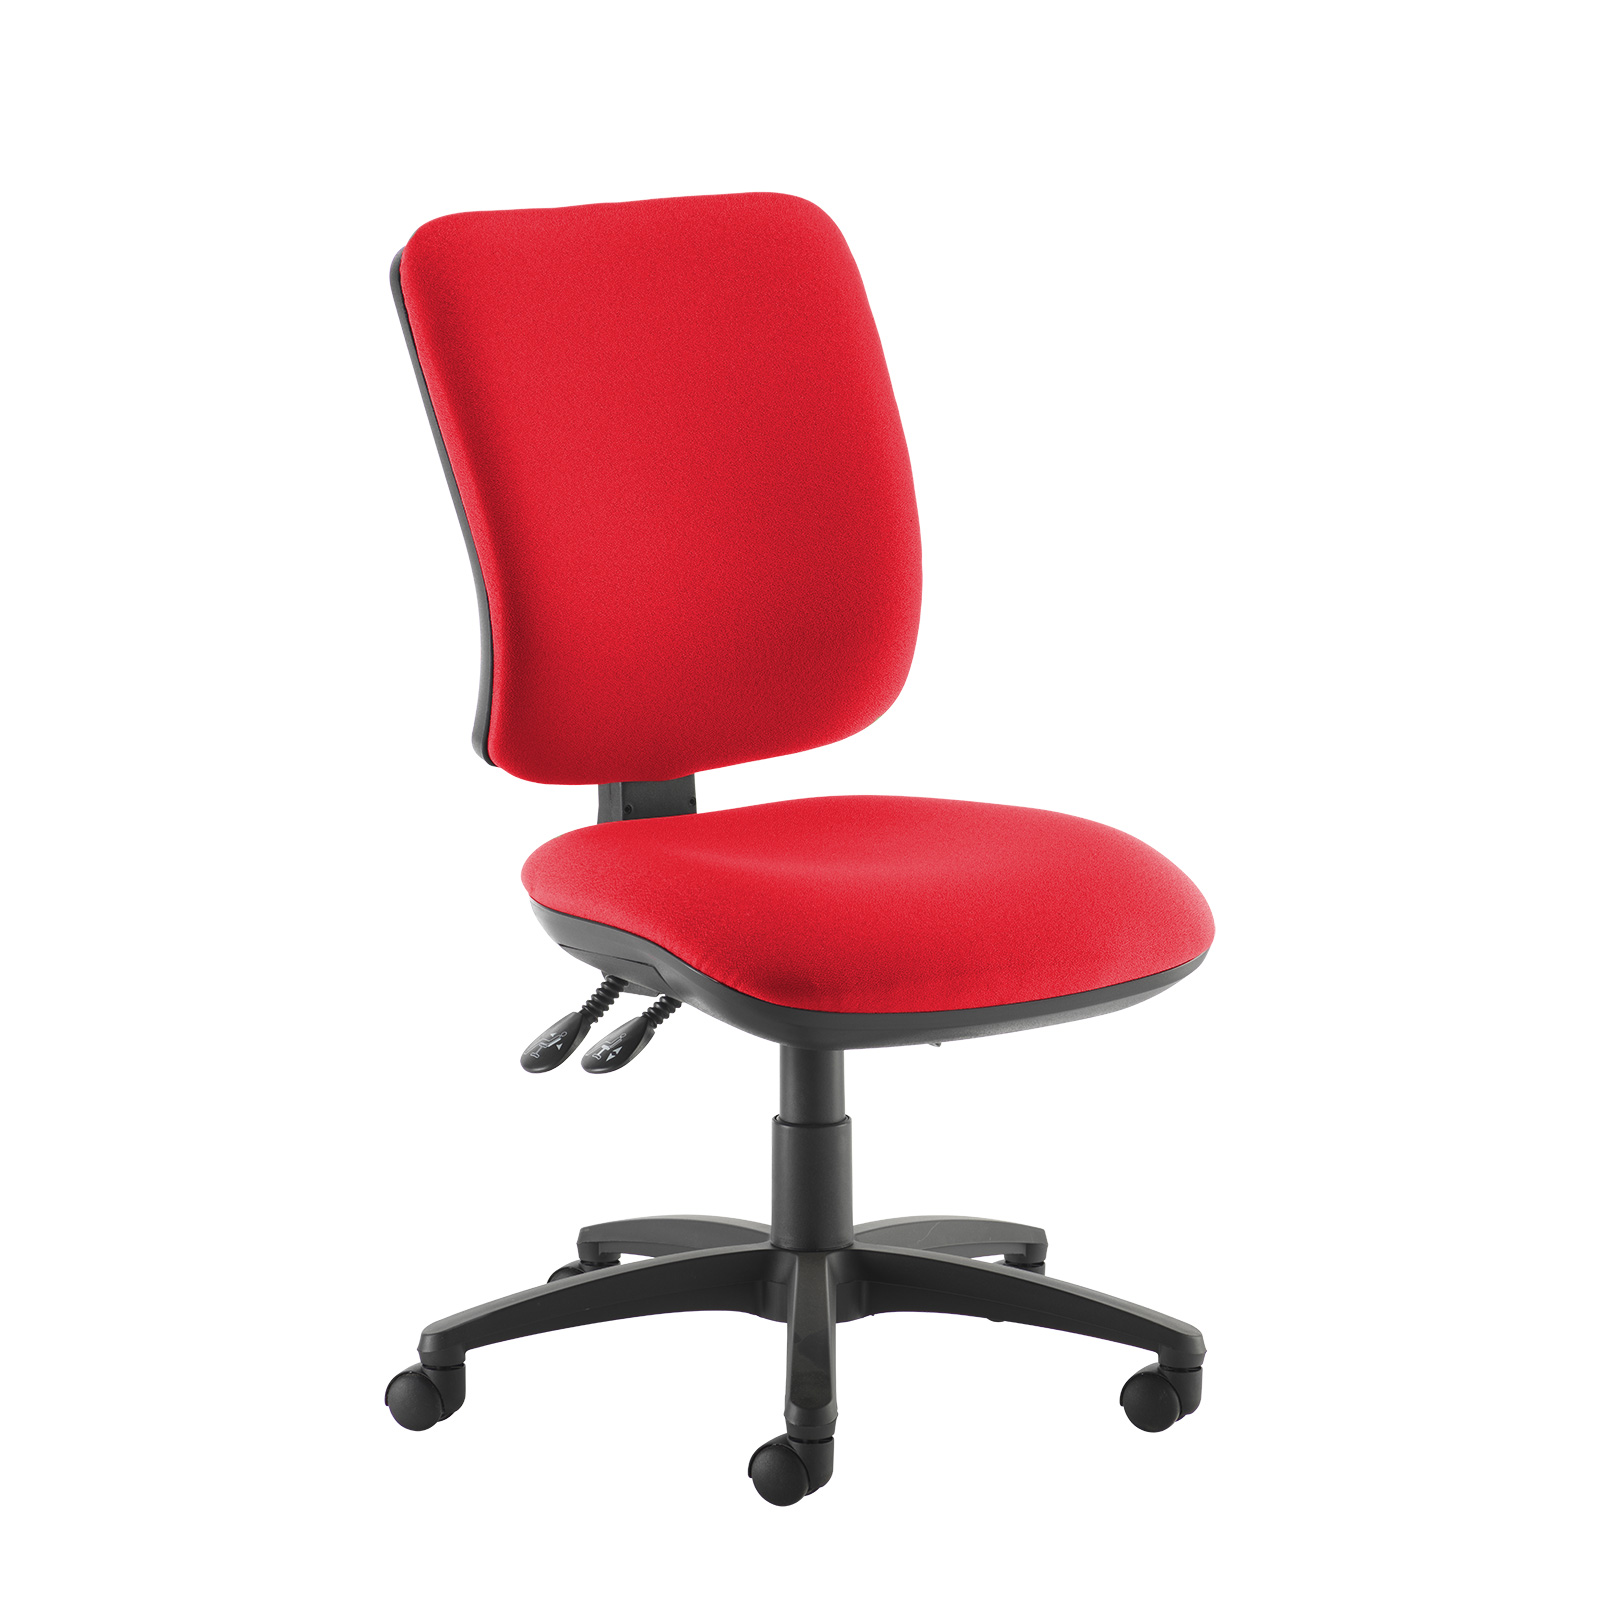 Desk Chairs Senza high back operator chair with no arms - red